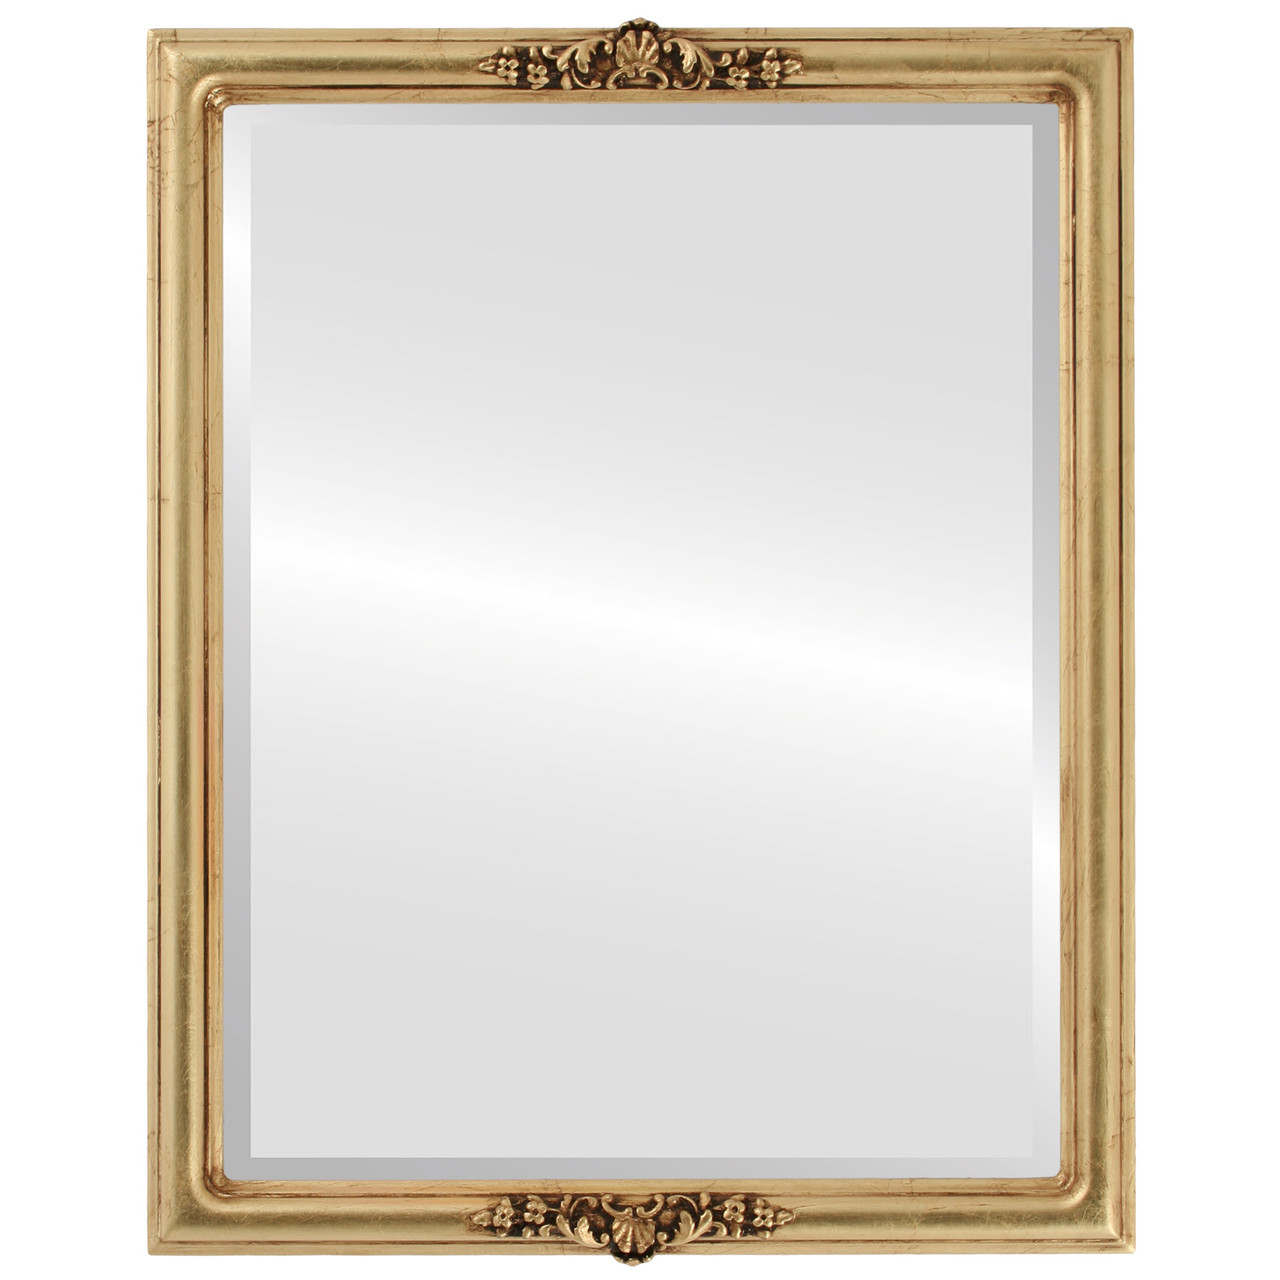 Vintage Gold Rectangle Mirrors from $151 | Free Shipping